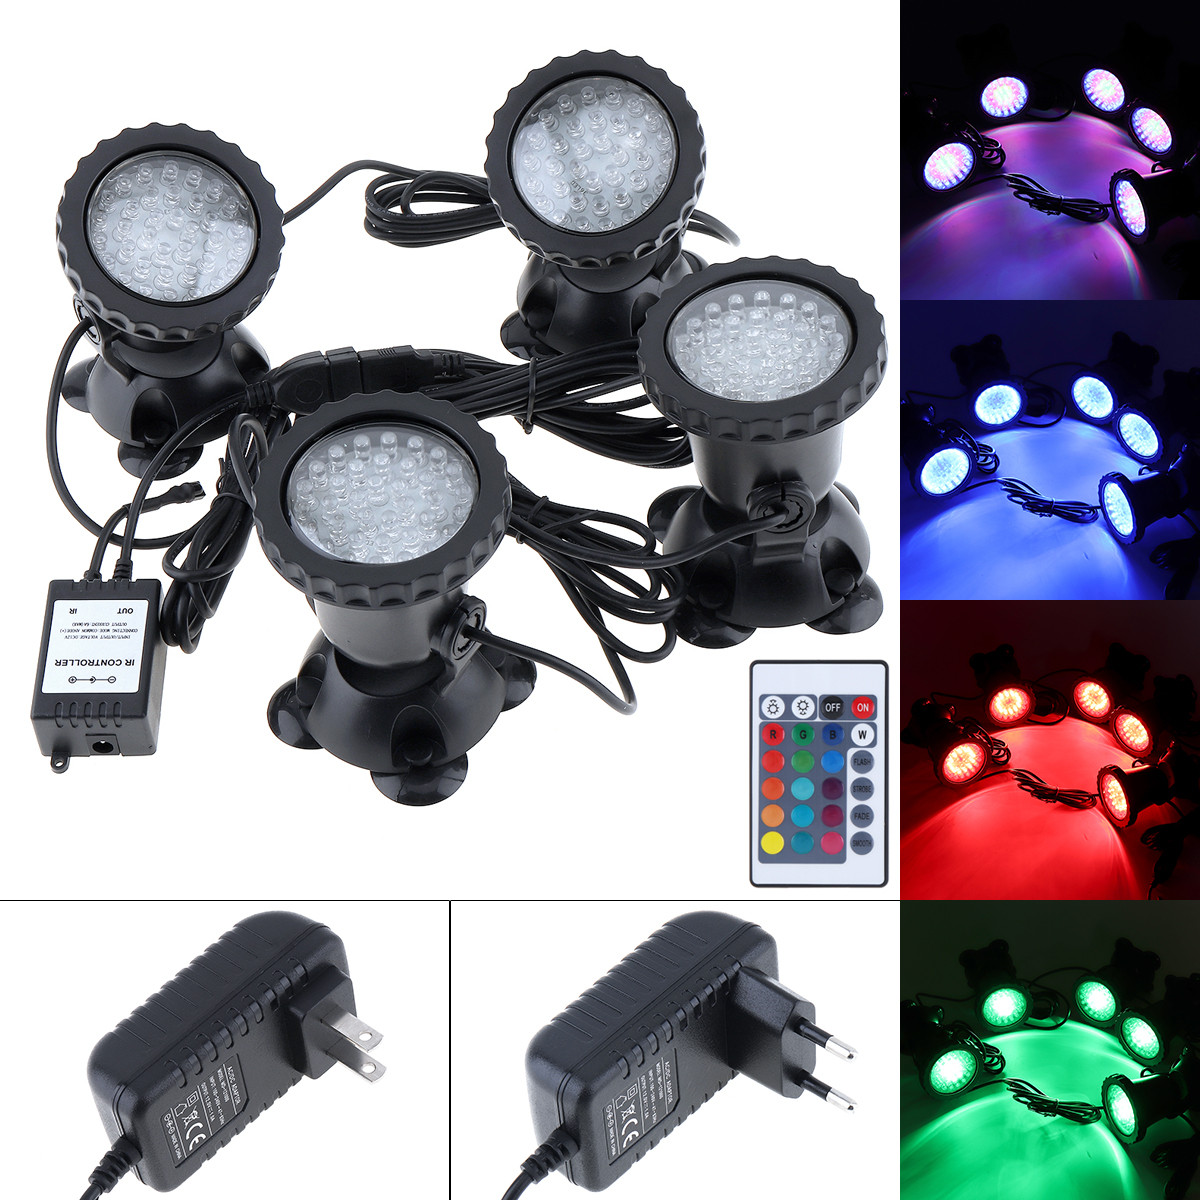 Waterproof 4 Lights LED Outdoor Landscape Spotlights Water Grass Fill Spot Light with Remote Control for